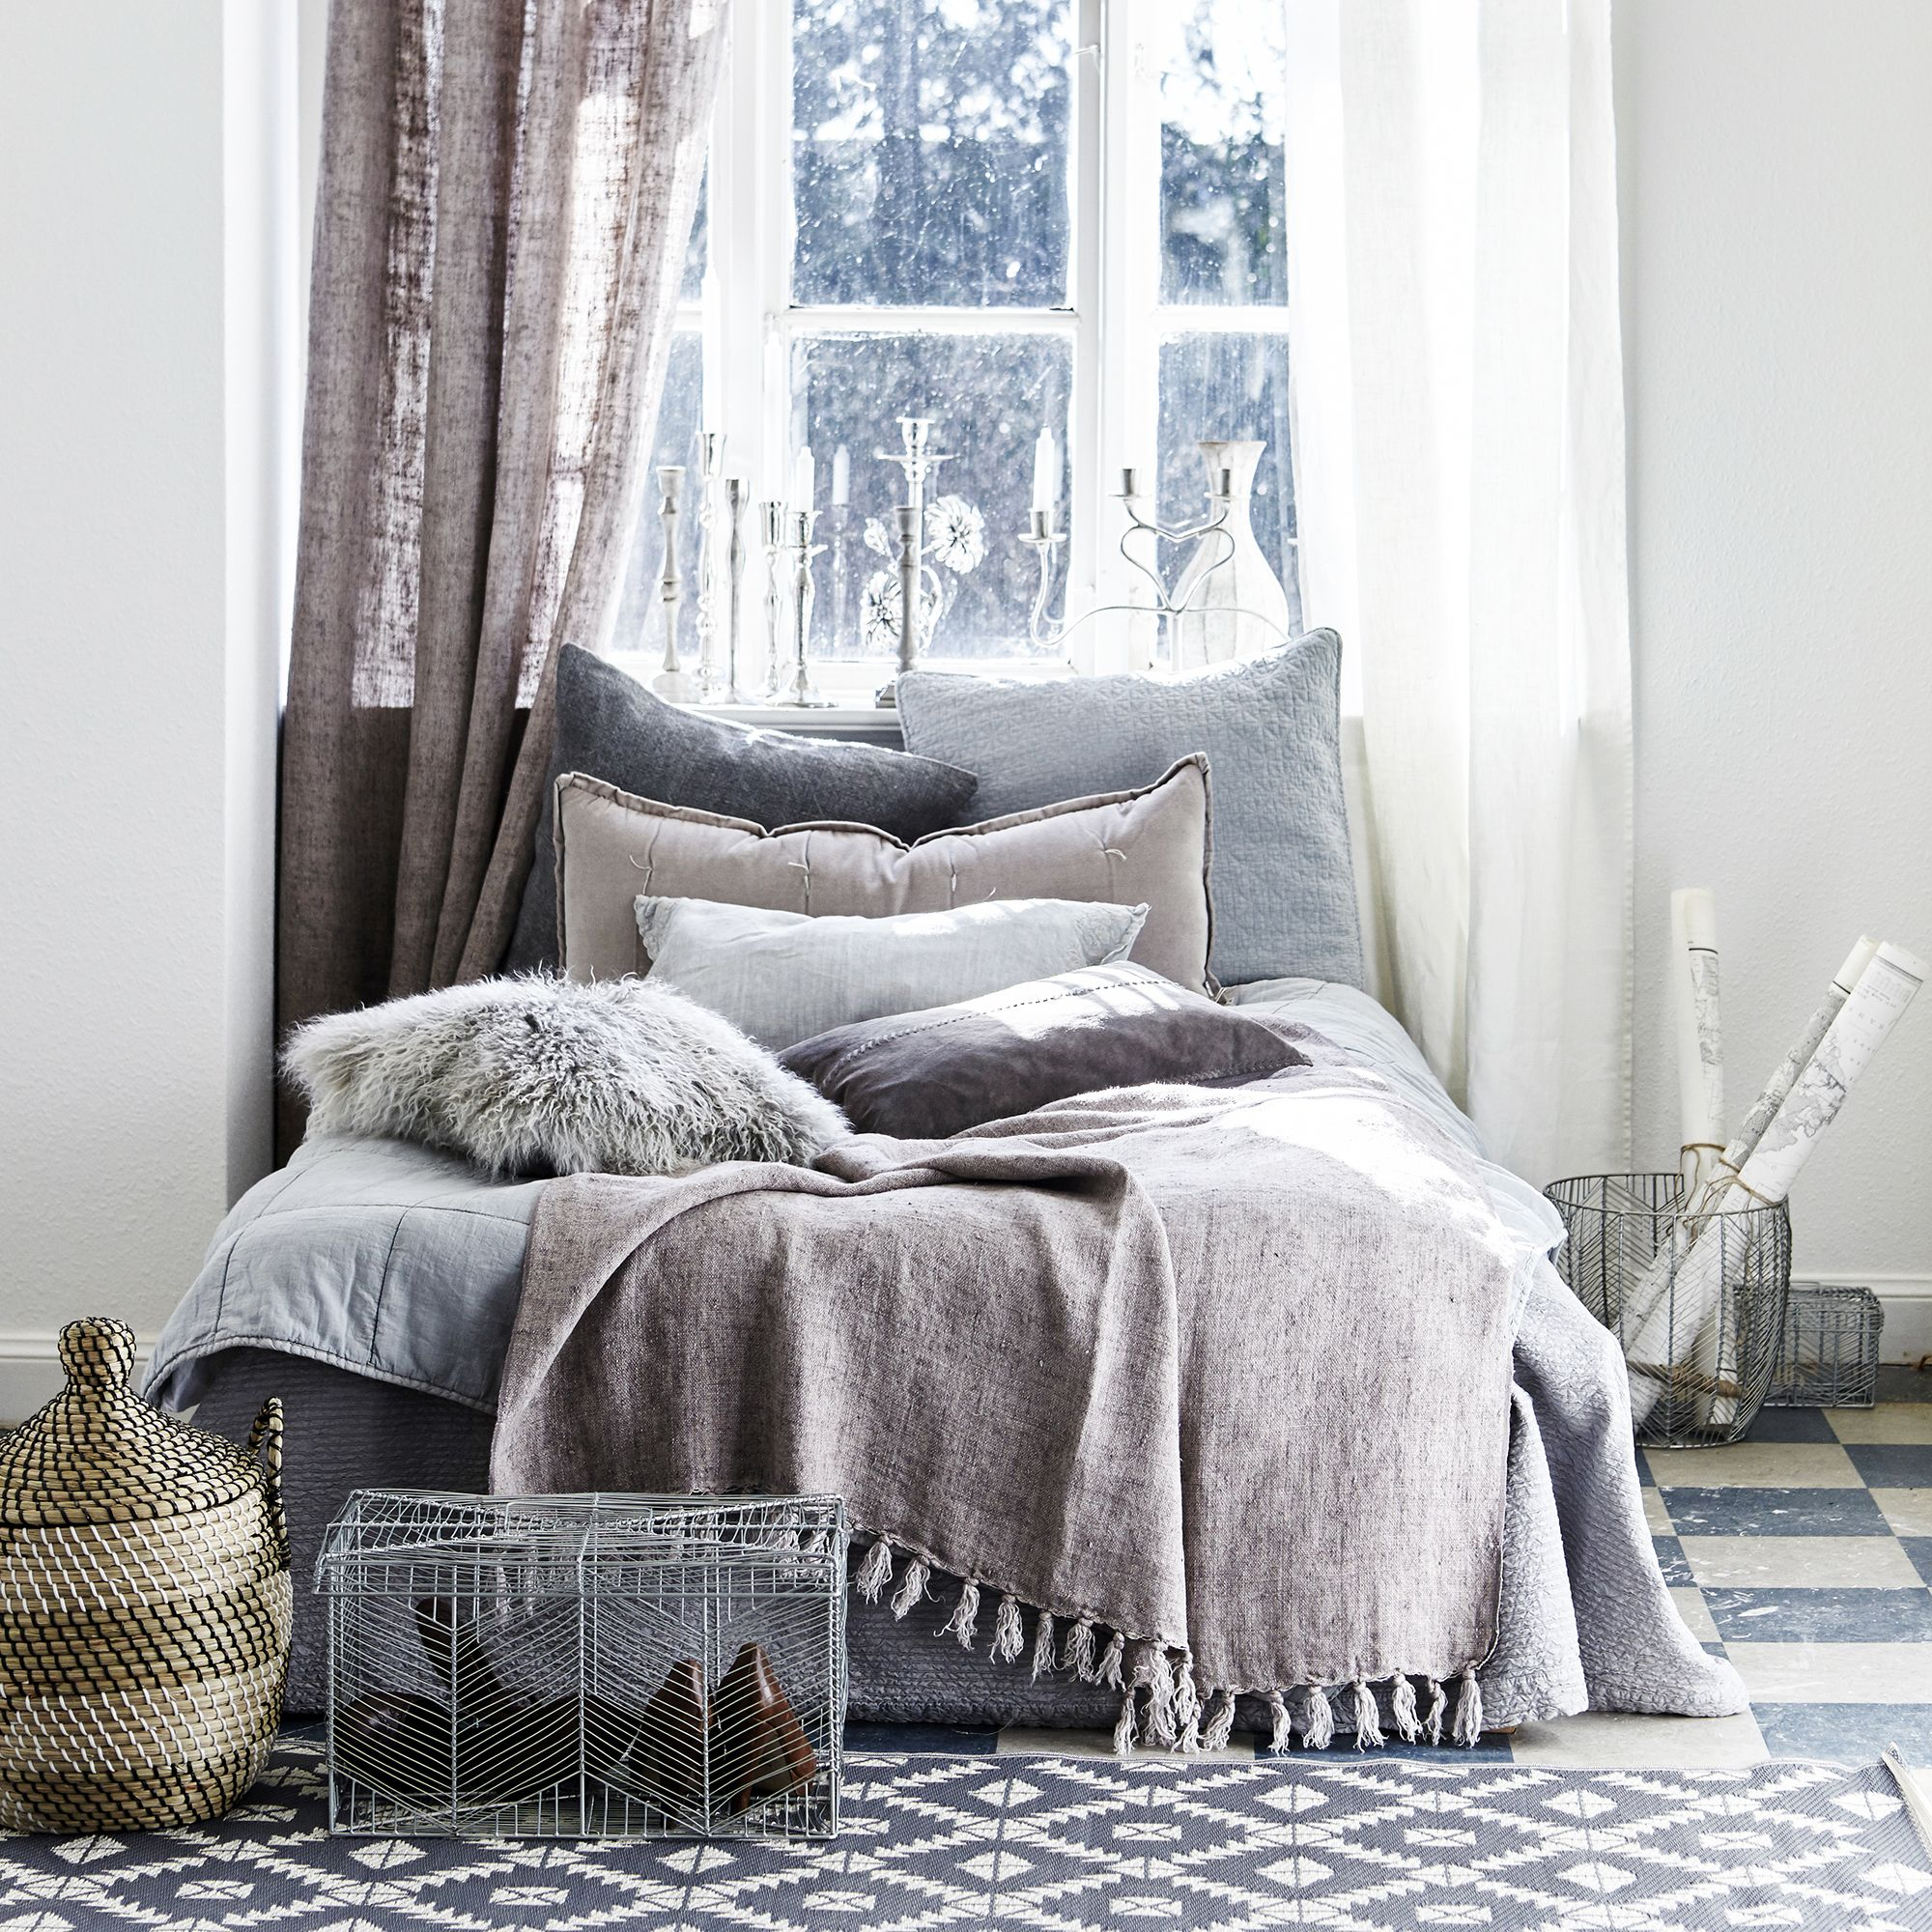 Bedroom by lene bjerre aw home decor pinterest bedrooms and